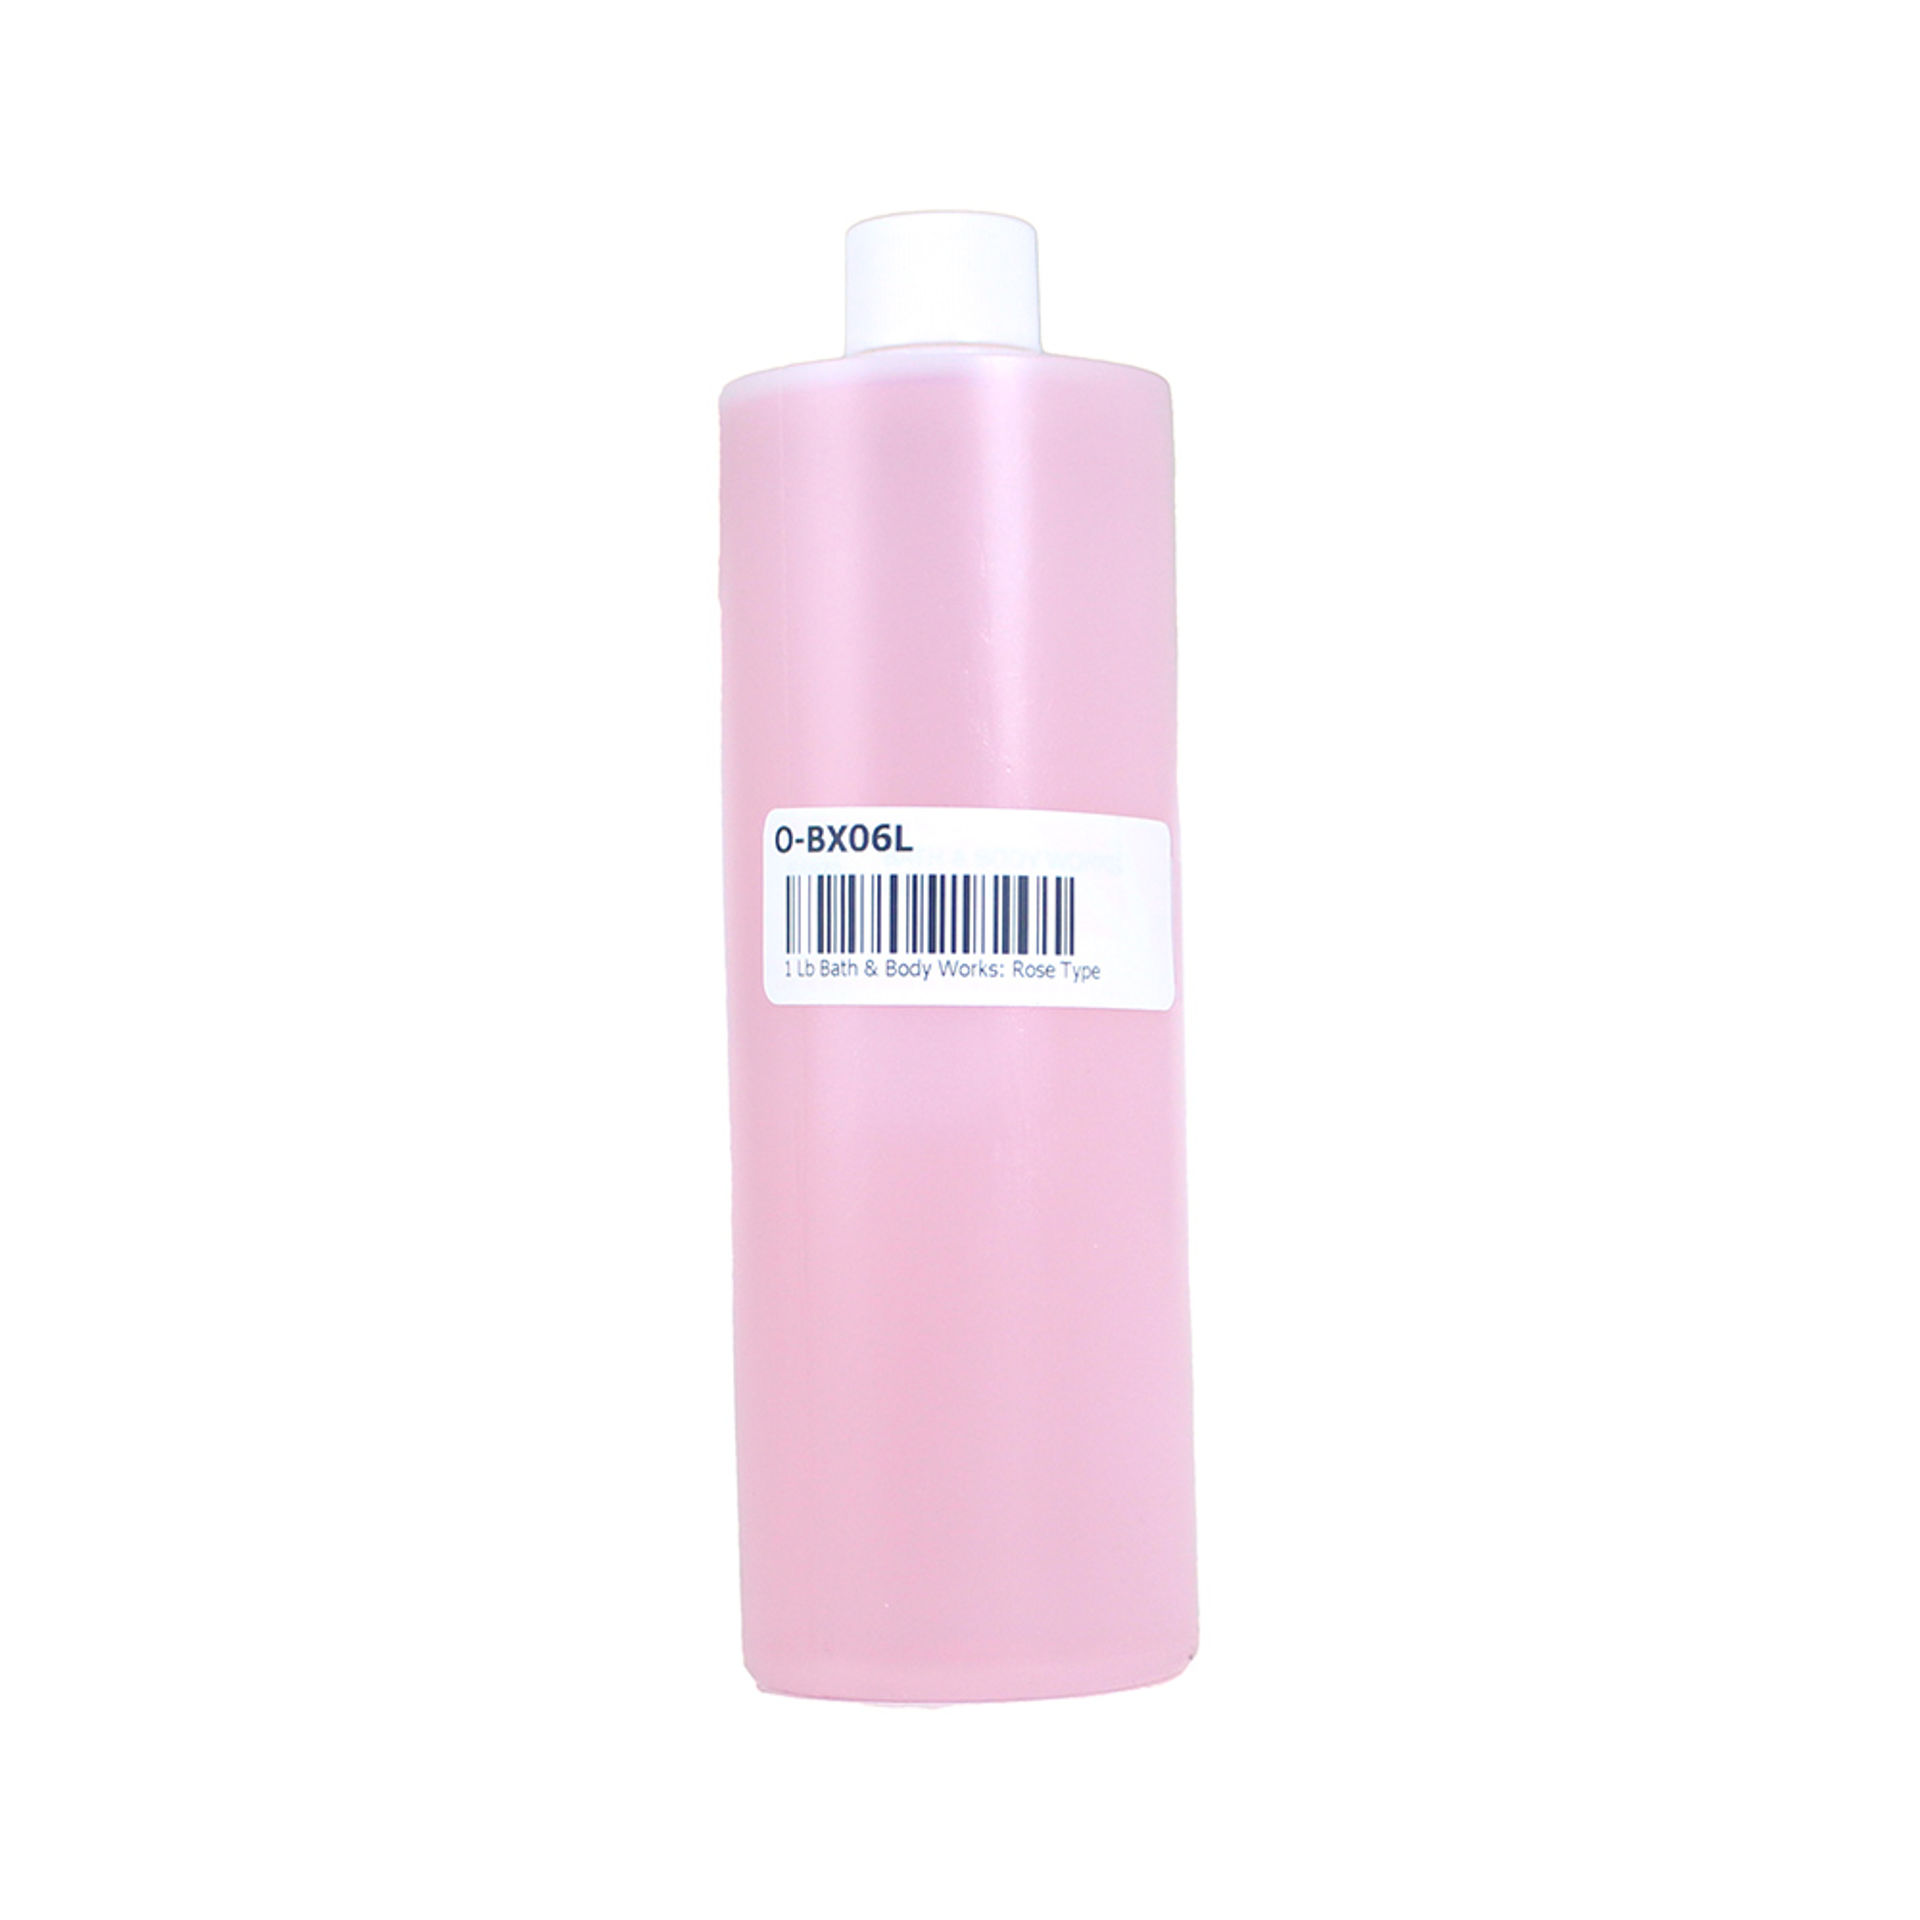 Picture of 1 Lb Bath & Body Works: Rose Type